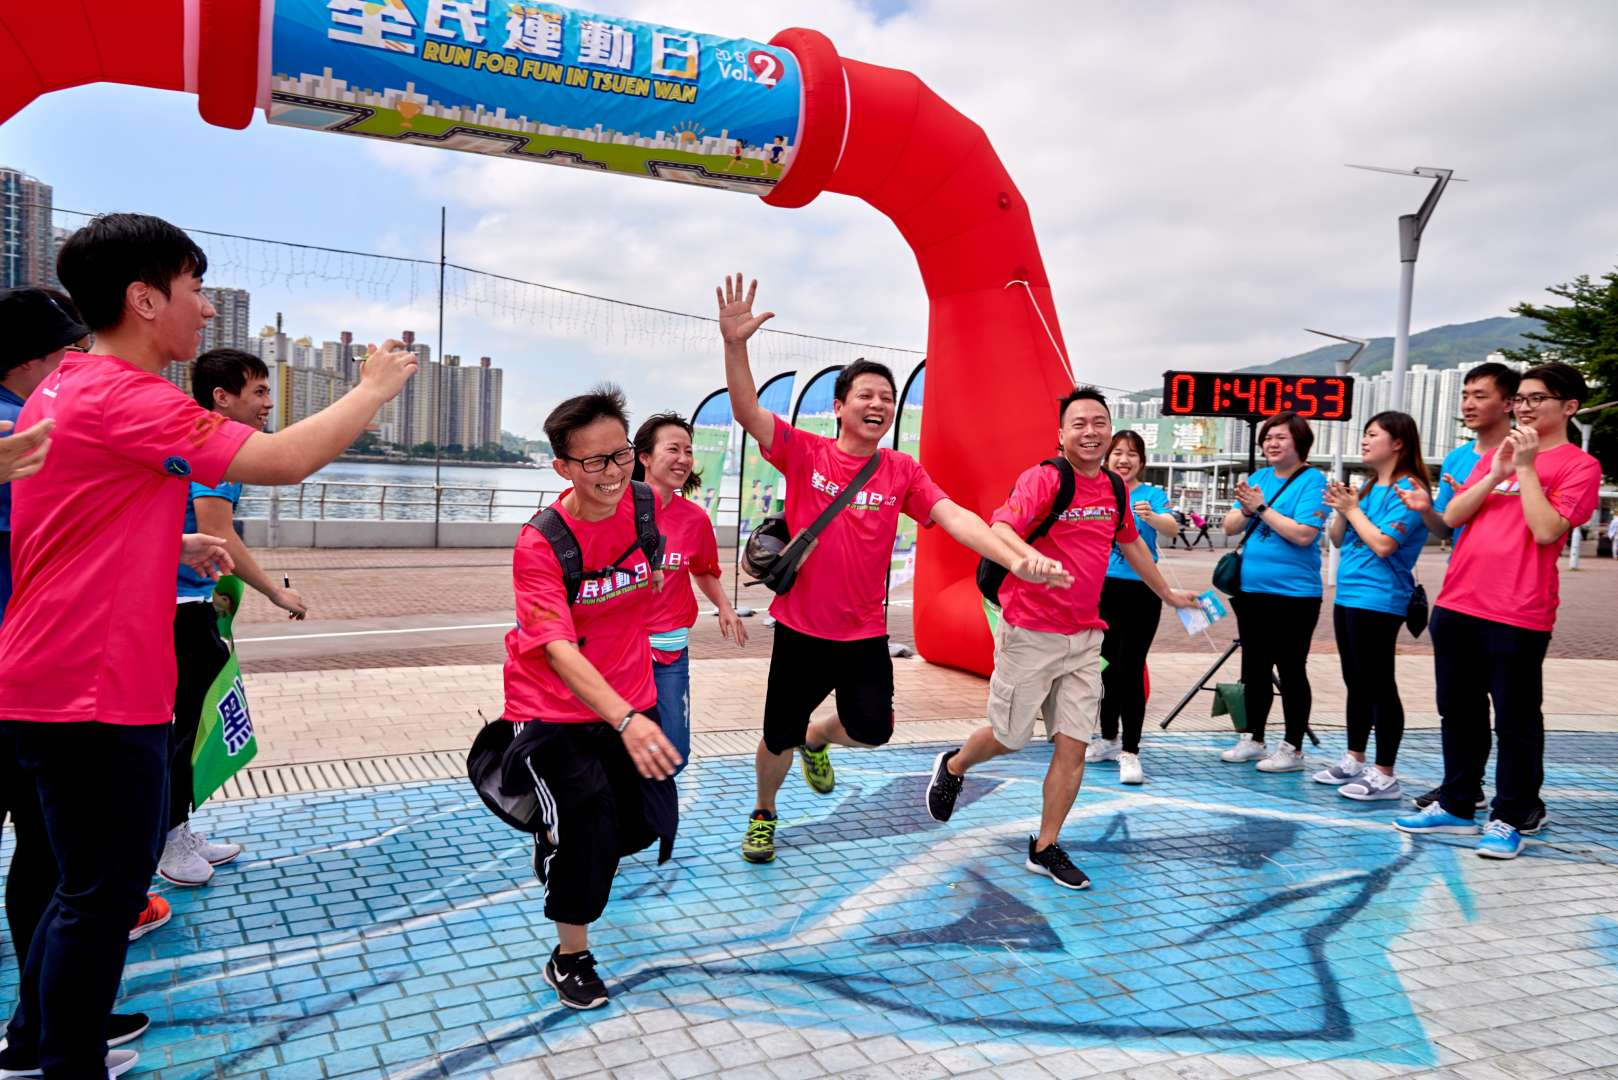 荃民運動日 Run For Fun in Tsuen Wan 2018 Vol.2